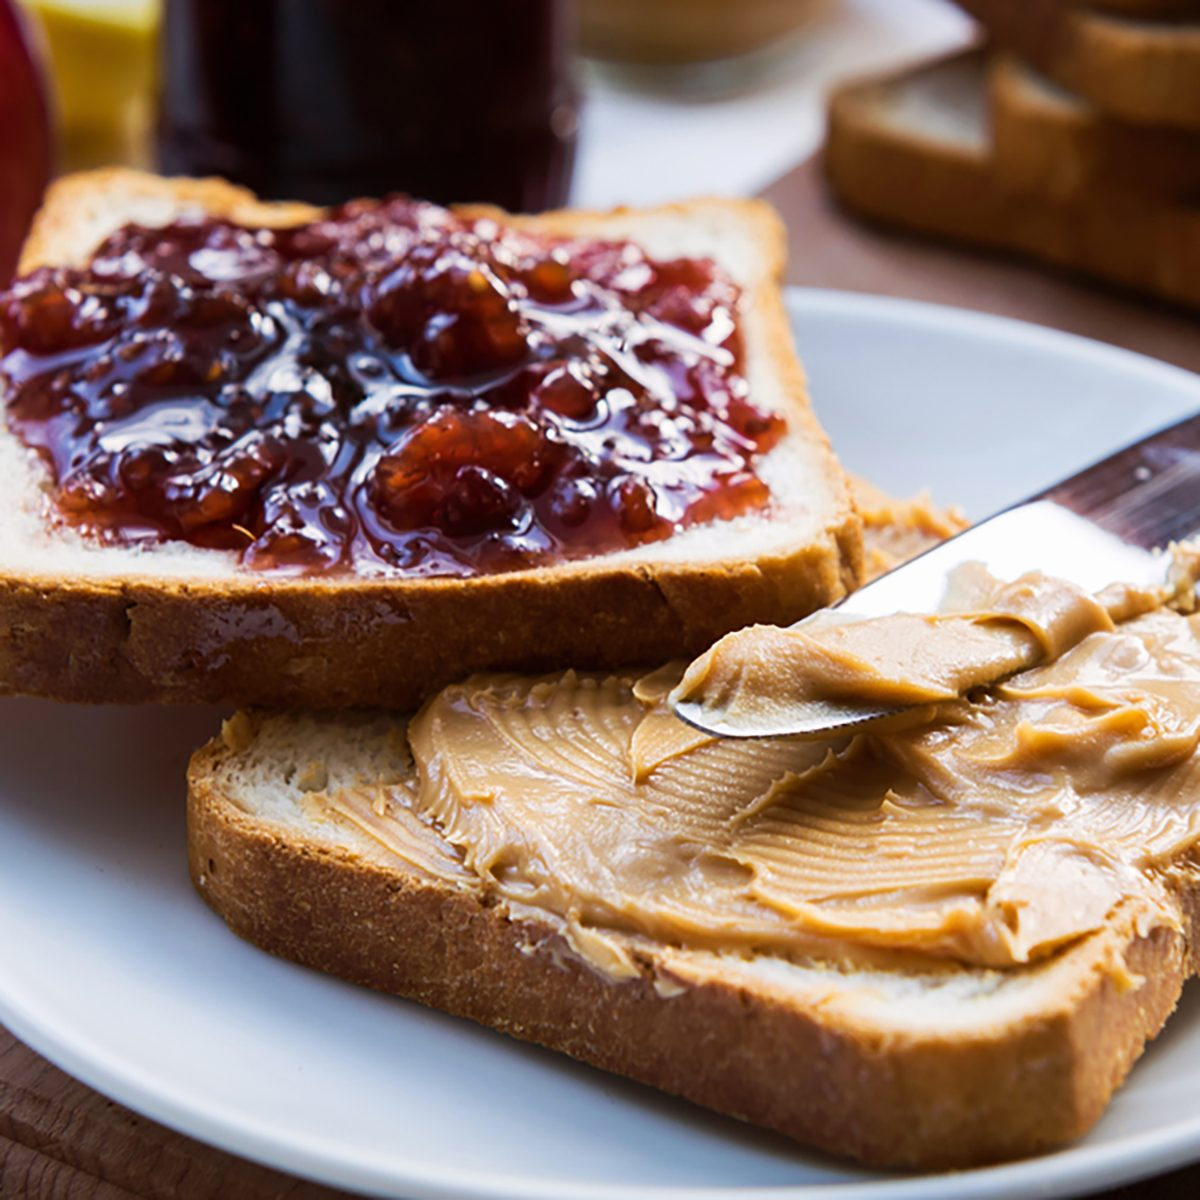 Peanut butter and raspberry jelly sandwich on wooden background.